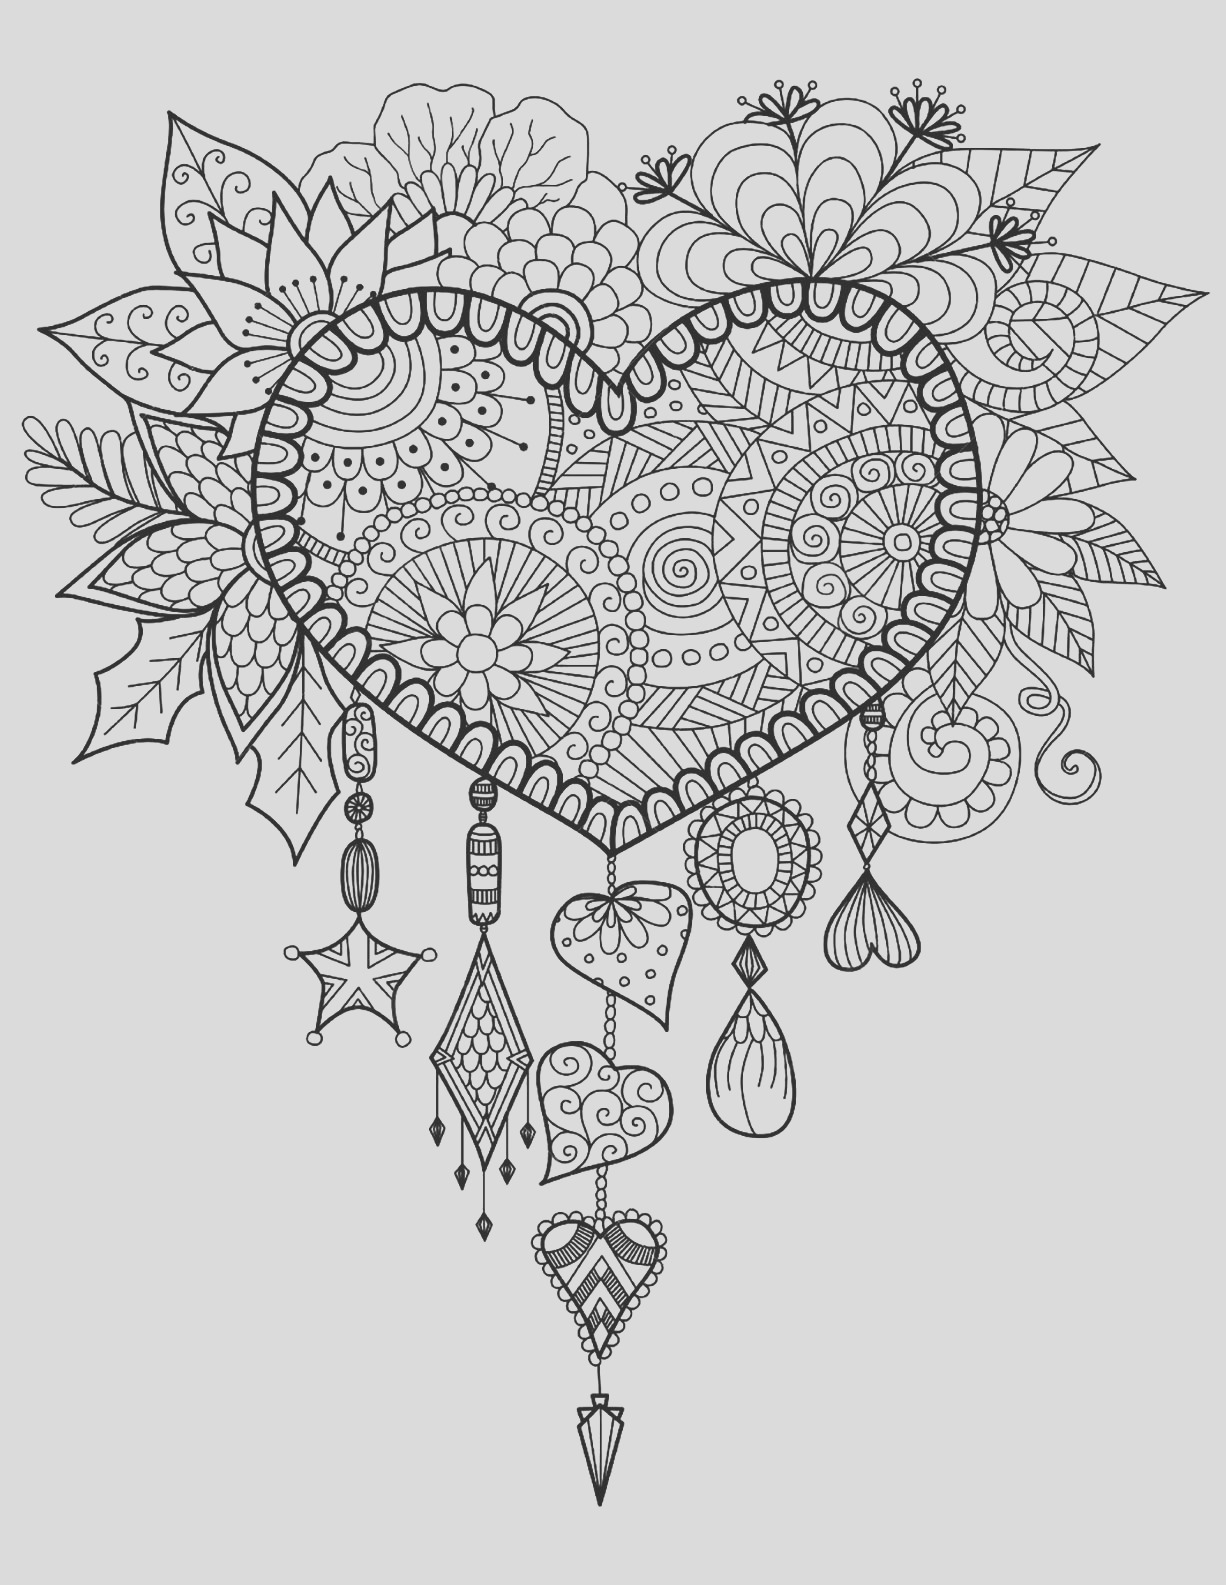 image=anti stress coloring page heart dreamcatcher 1